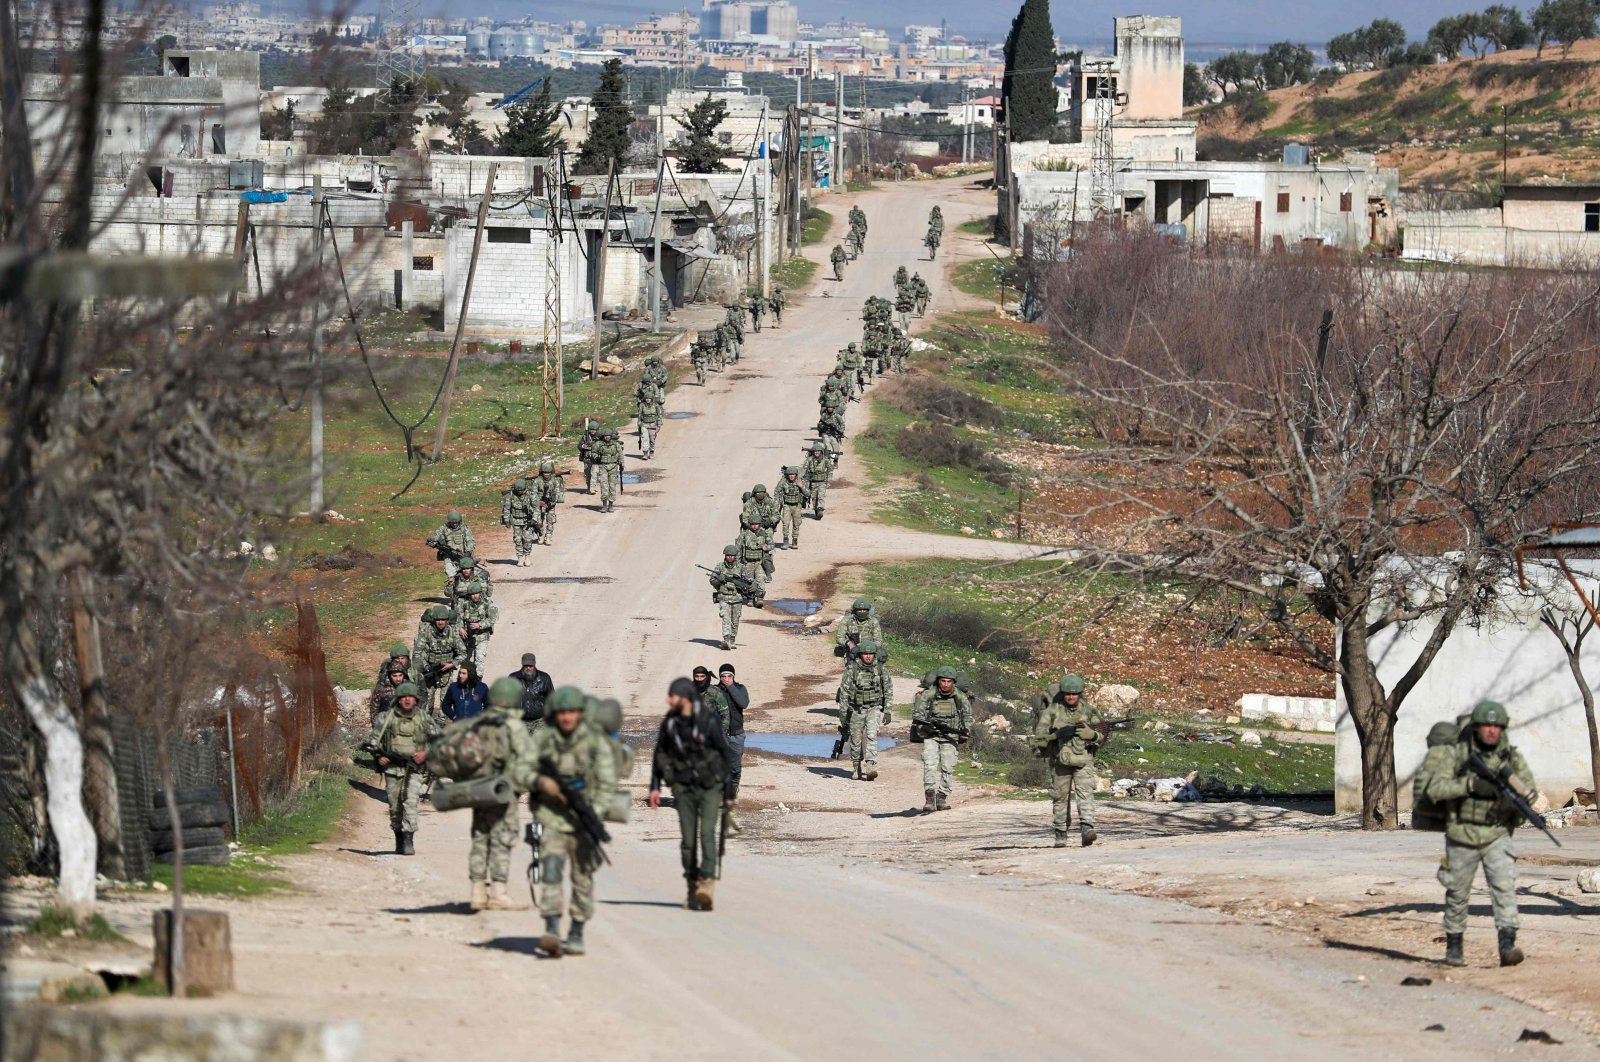 Turkish soldiers gather in the village of Qaminas, about 6 kilometers (3.7 miles) southeast of Idlib city in northwest Syria, Feb. 10, 2020. (AFP File Photo)